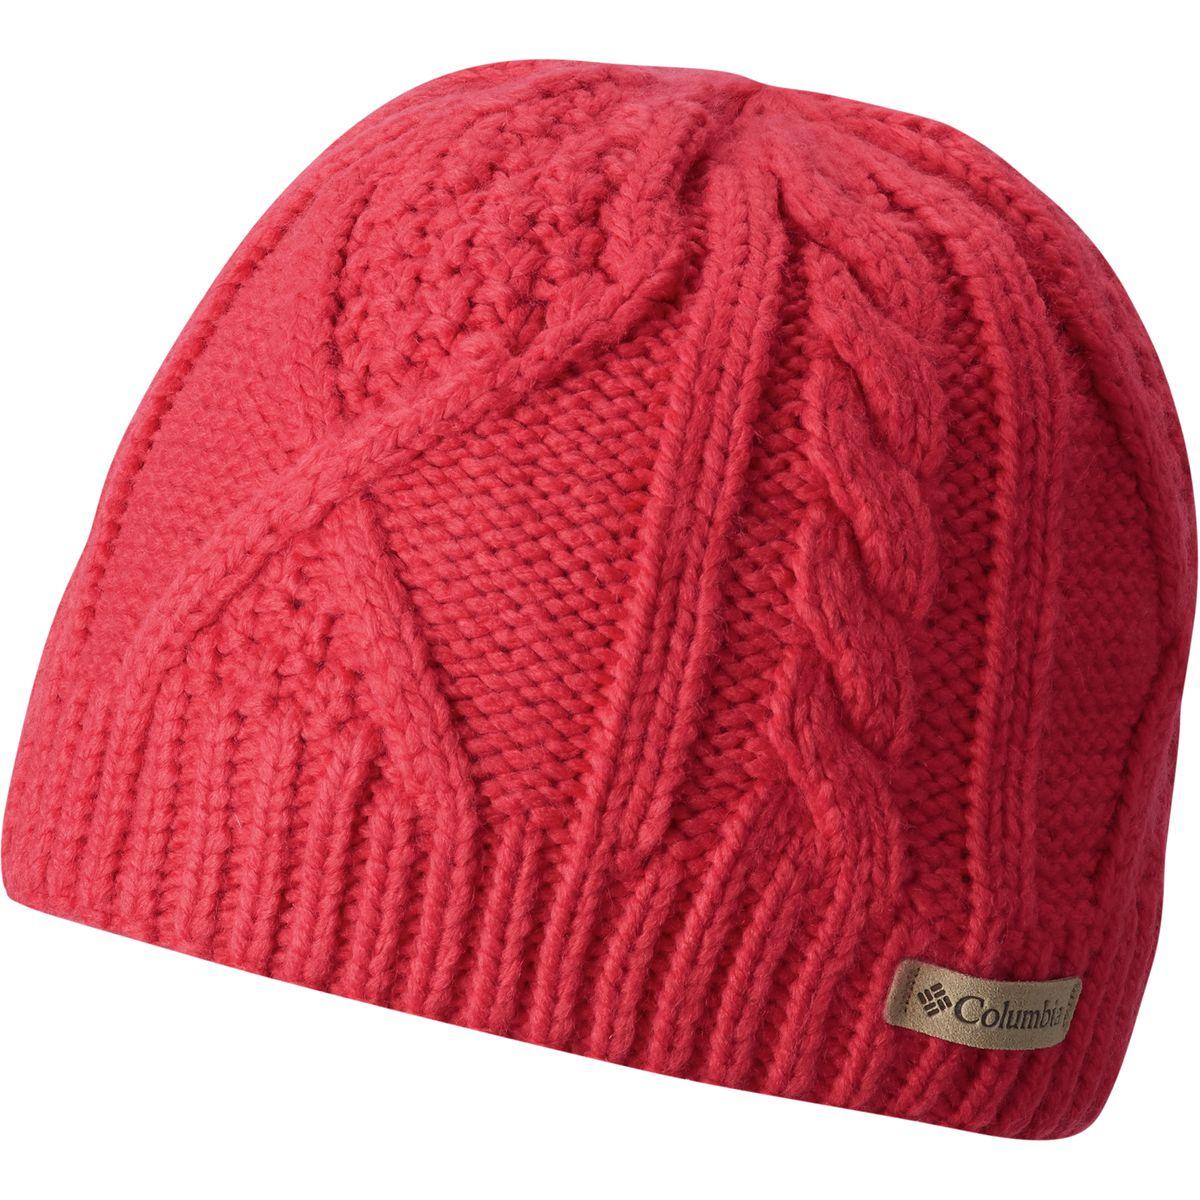 Columbia Cable Cutie Beanie - Kids